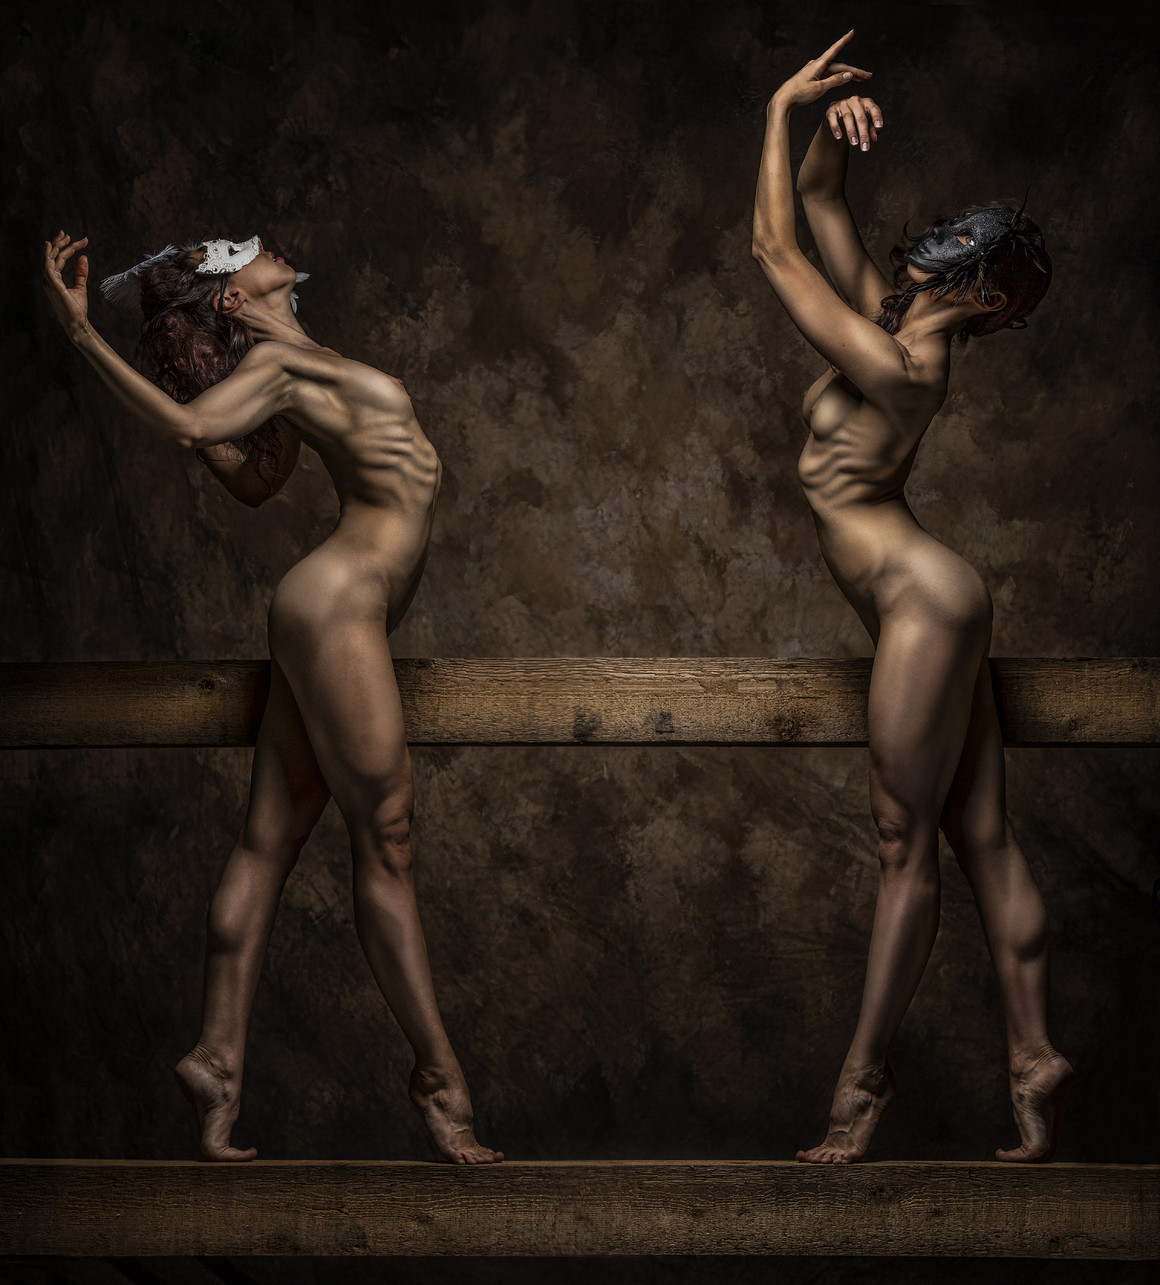 nude art limited edition print